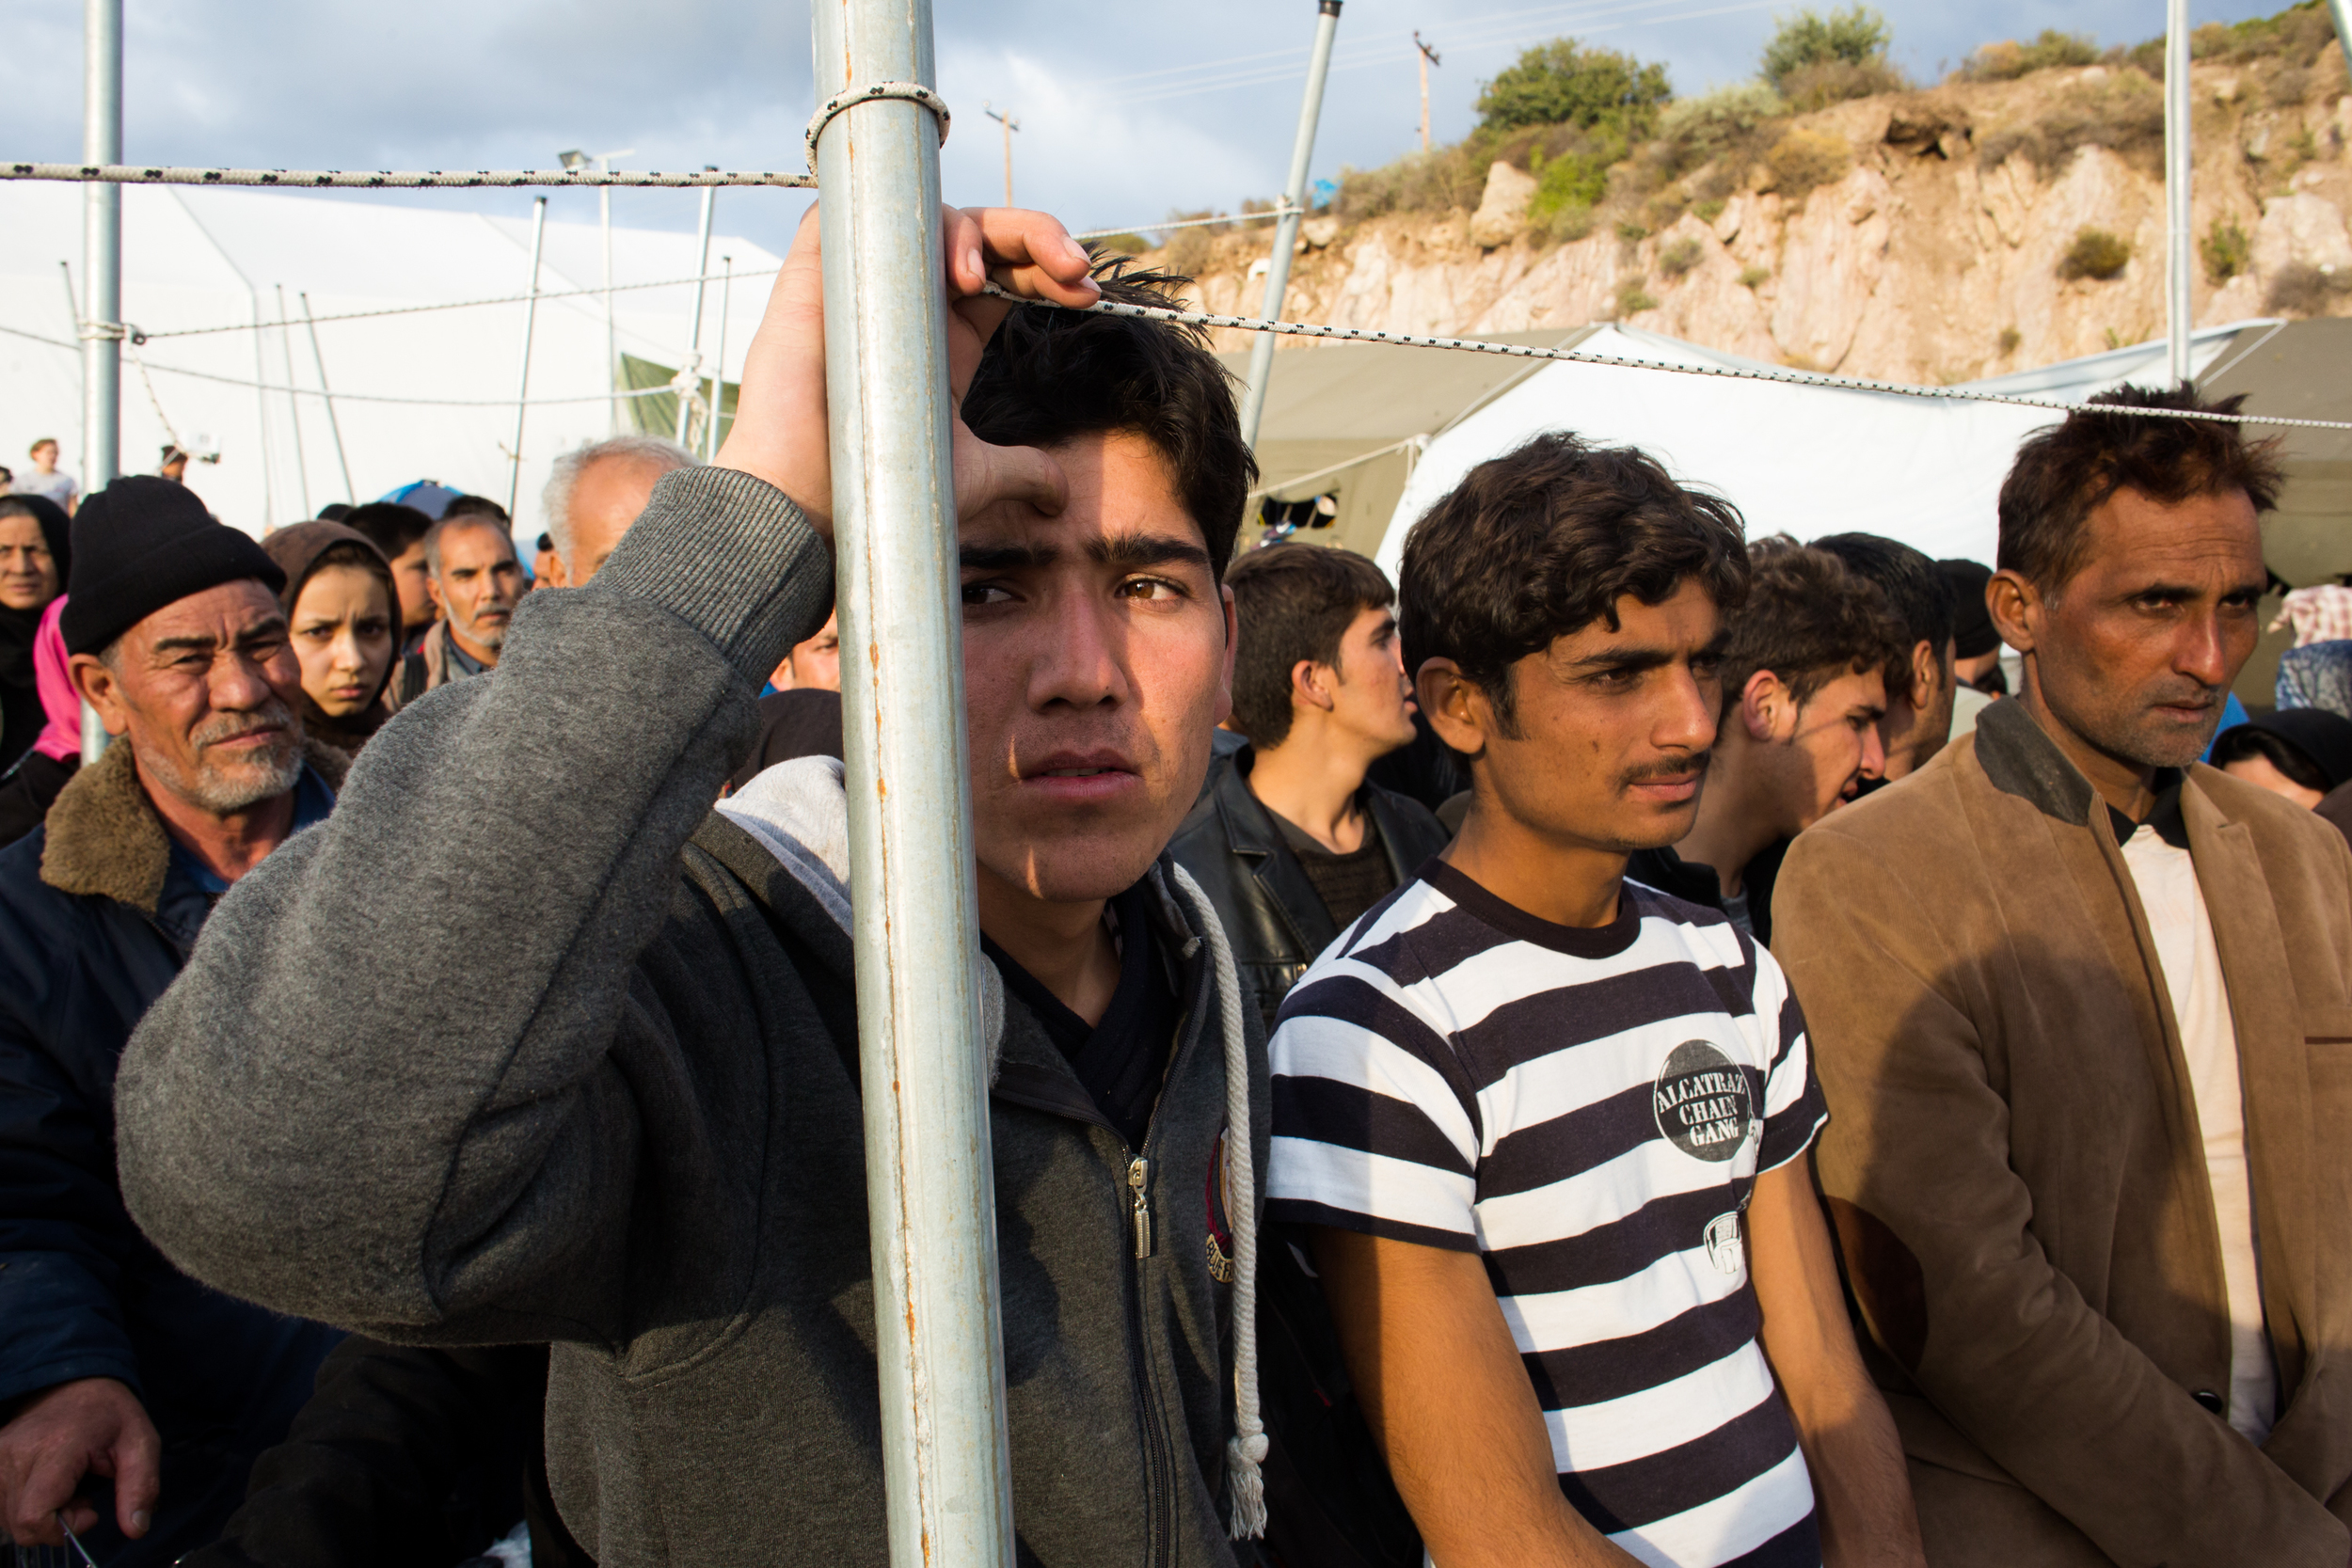 A group of men wait to board a bus bound for the registration camp at the southern end of the island of Lesvos. Families are given priority when loading buses bound for the registration centers at the south of the island and young men are often asked to sleep outside until more buses arrive the next morning.